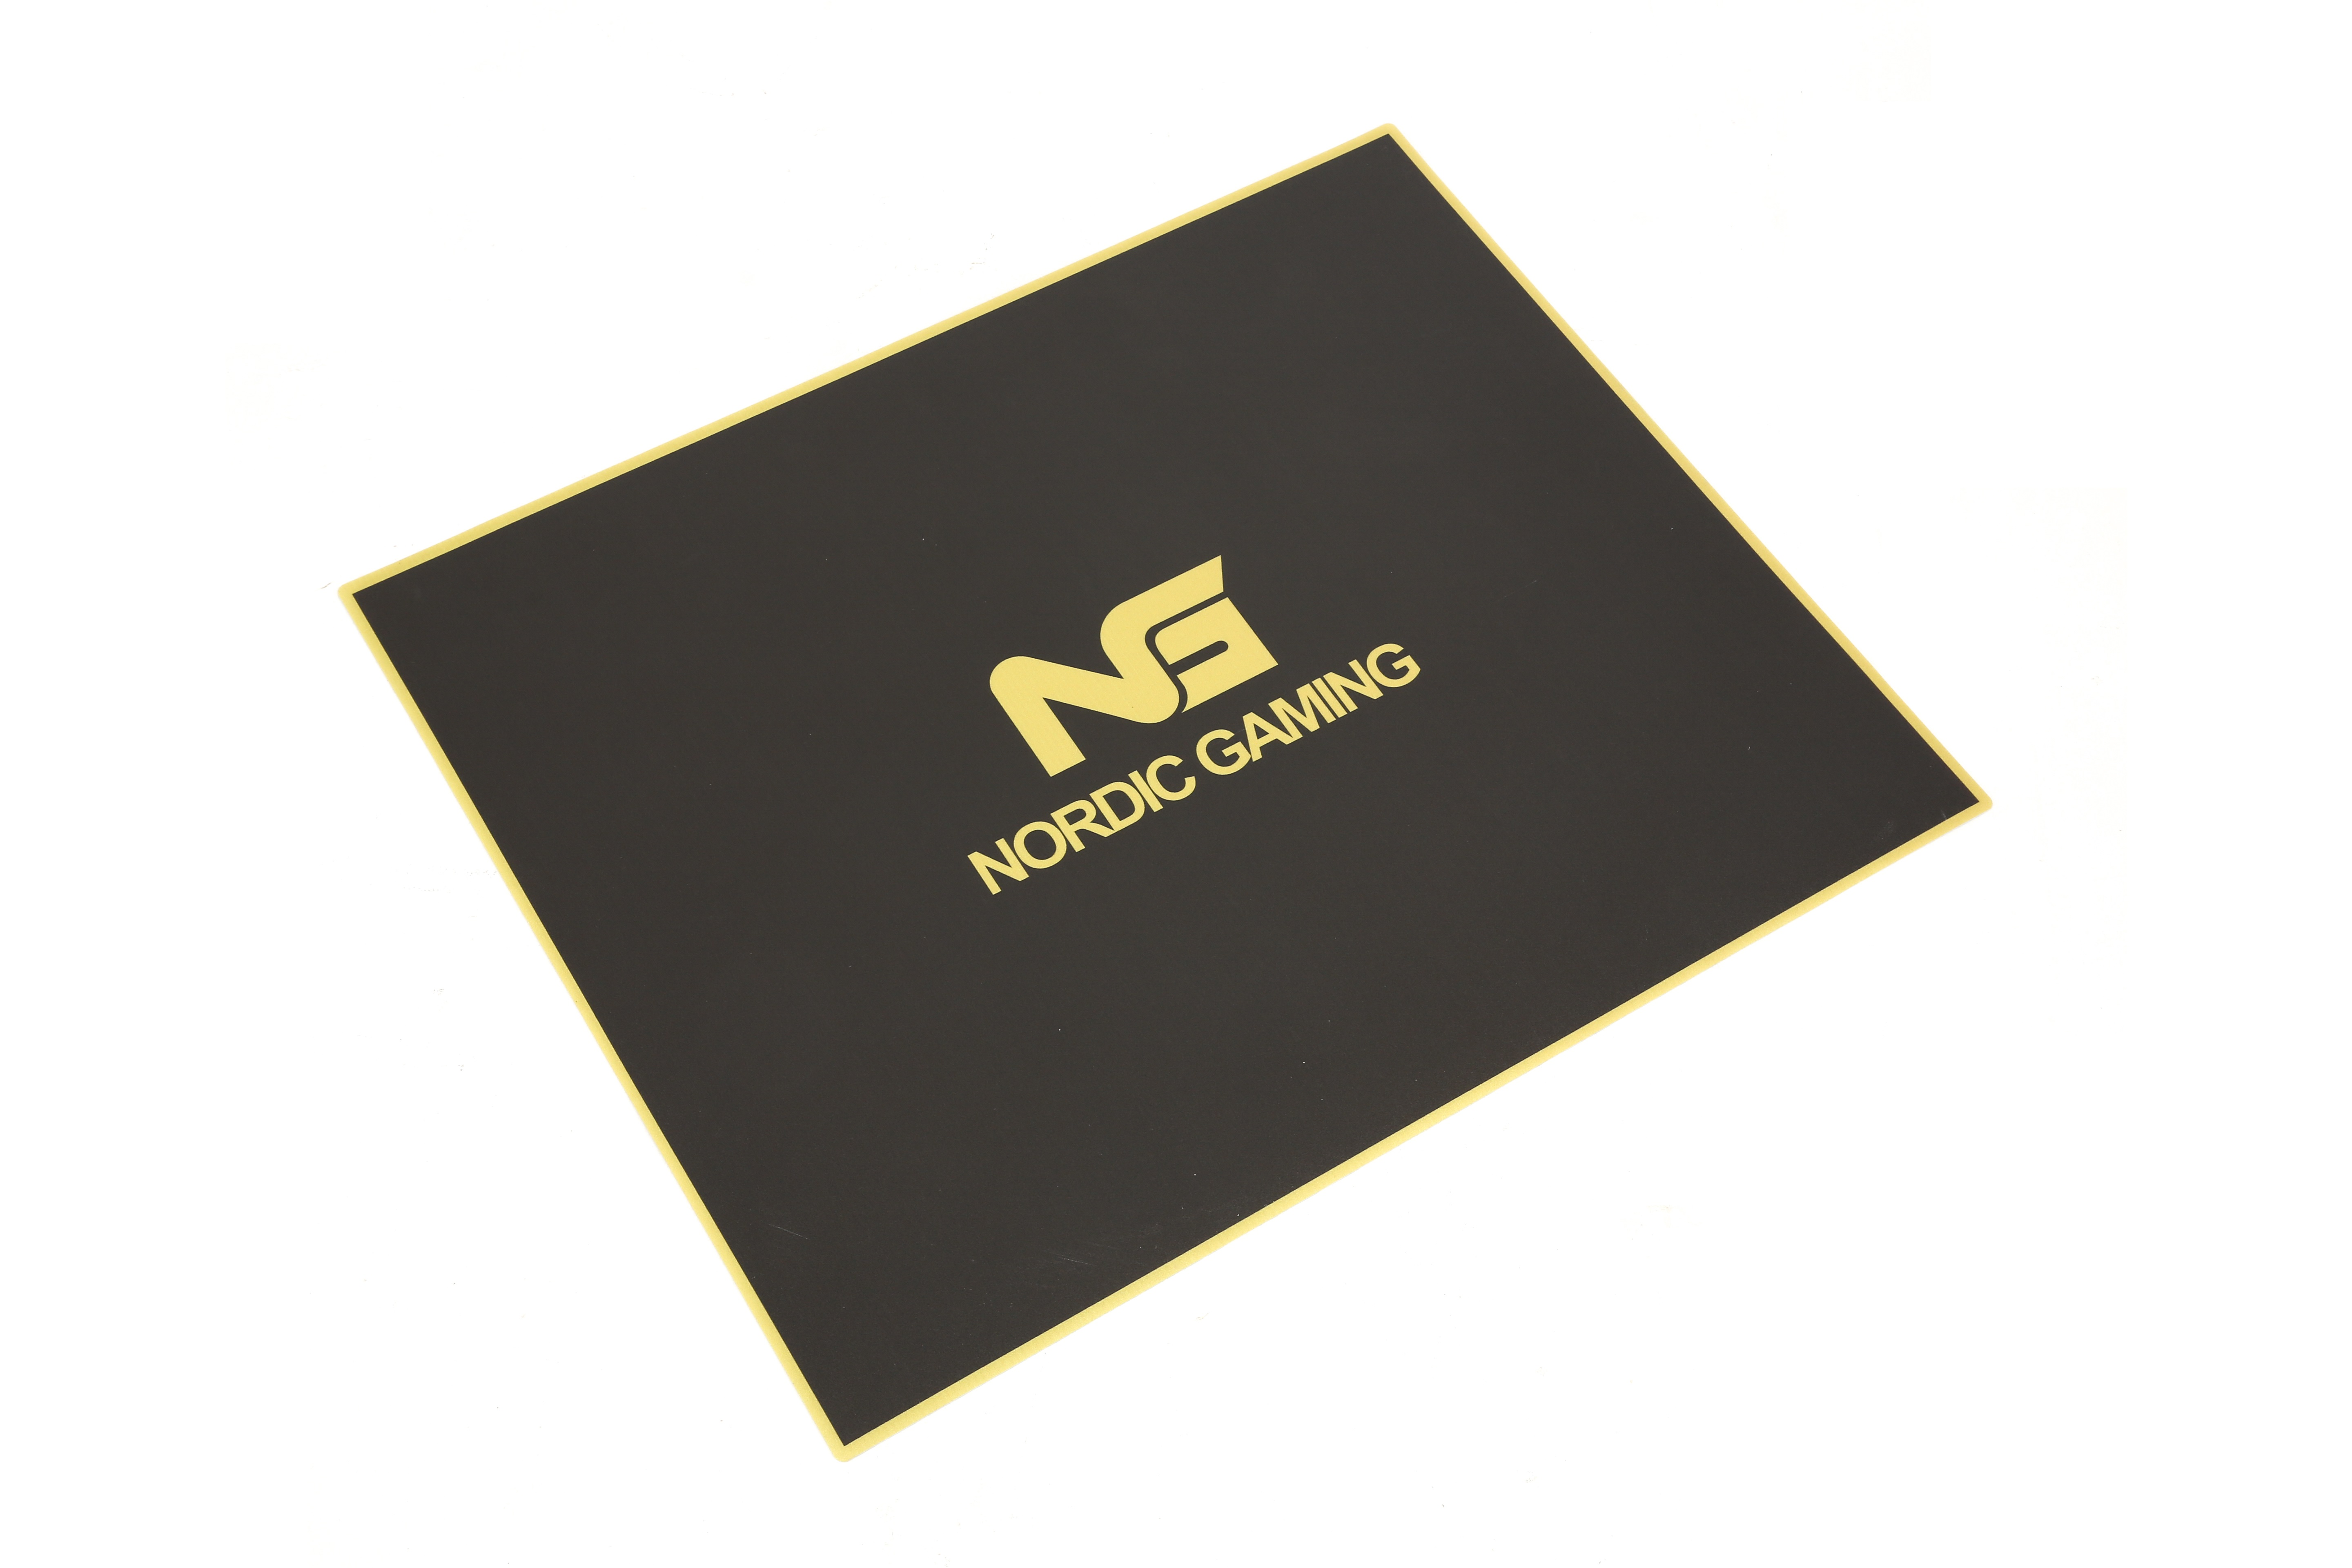 Nordic Gaming Guardian Gold Floor Mat